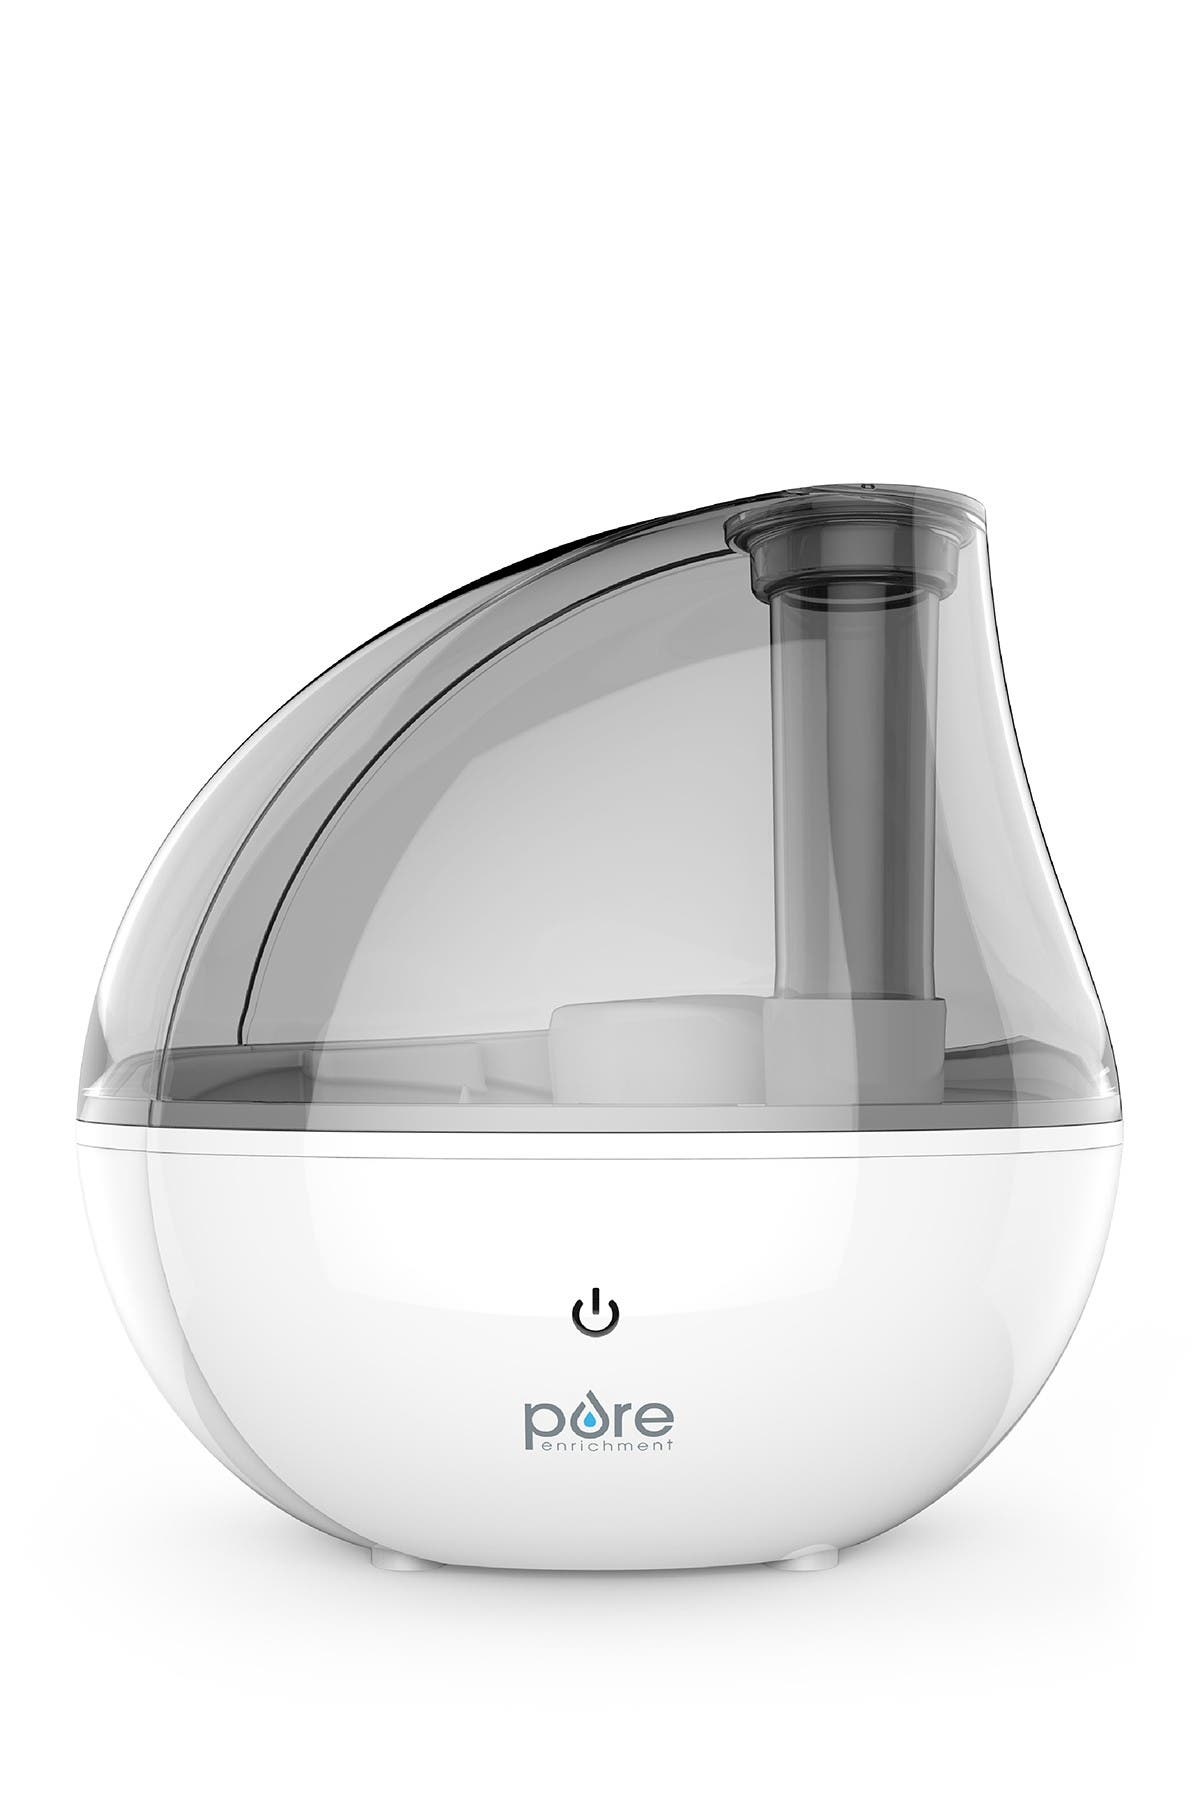 Image of PURE ENRICHMENT MistAire Silver Ultrasonic Cool Mist Humidifier